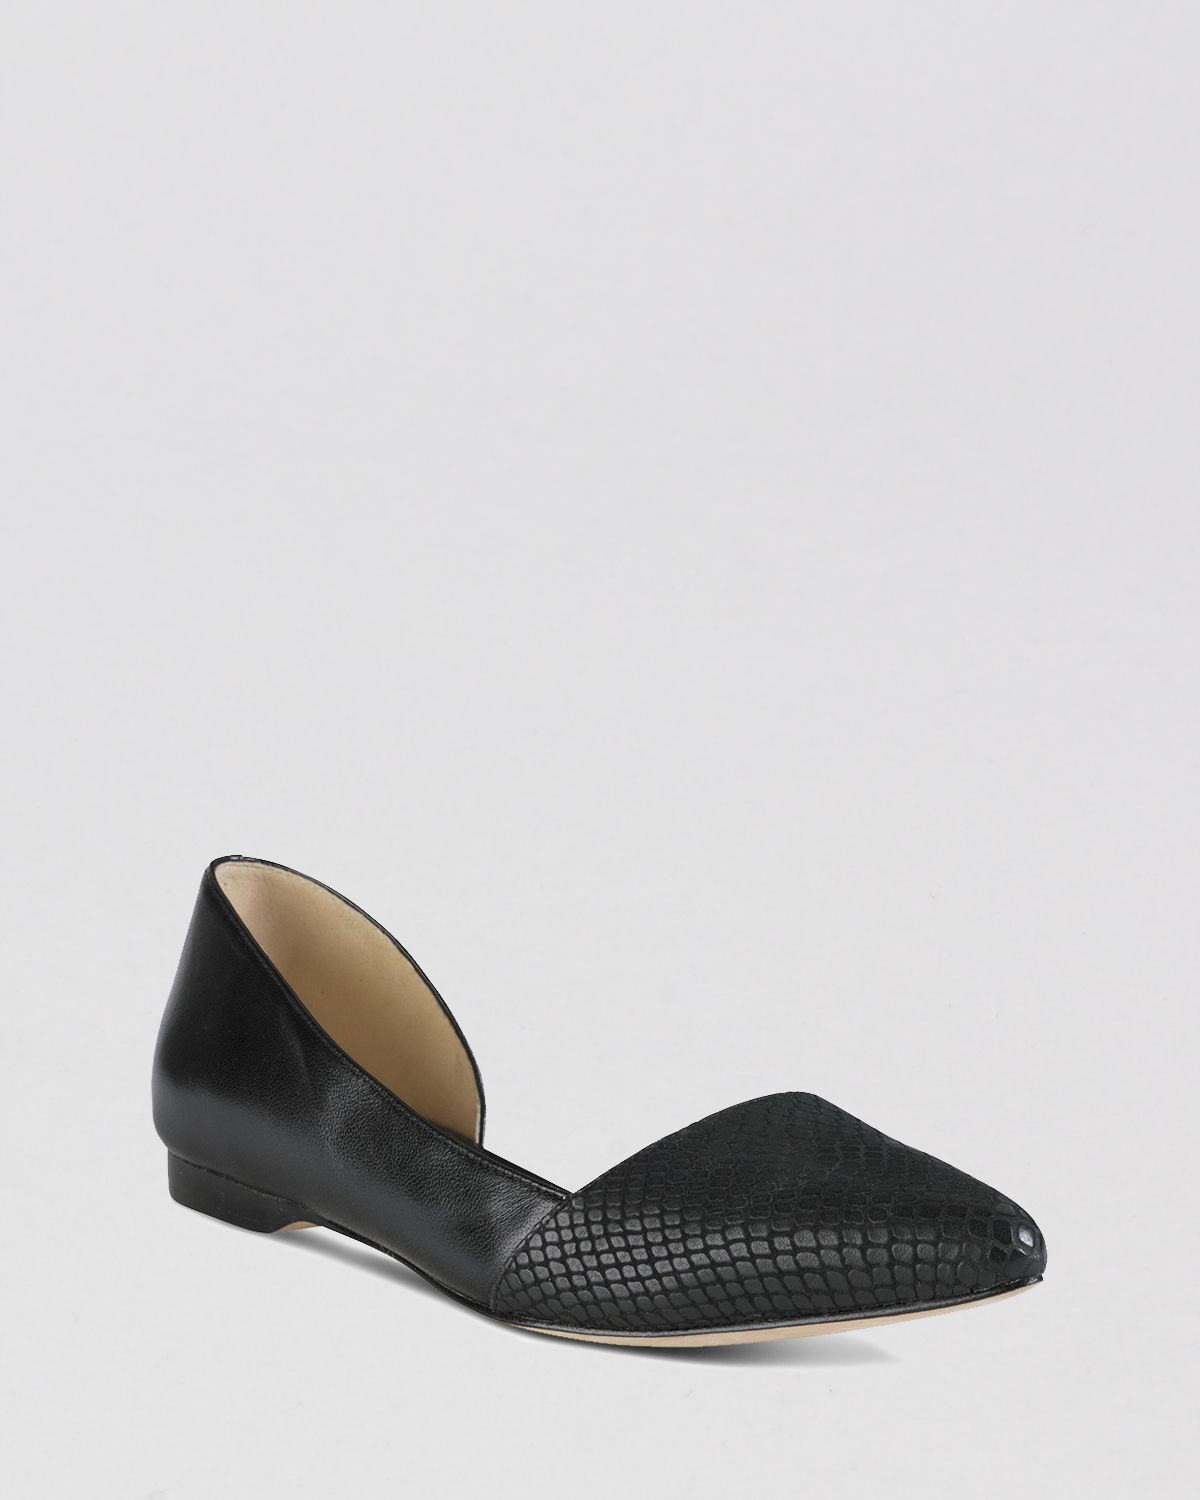 7daba9fb8a3 Lyst - Cole Haan Pointed Toe D Orsay Flats - Amalia in Black